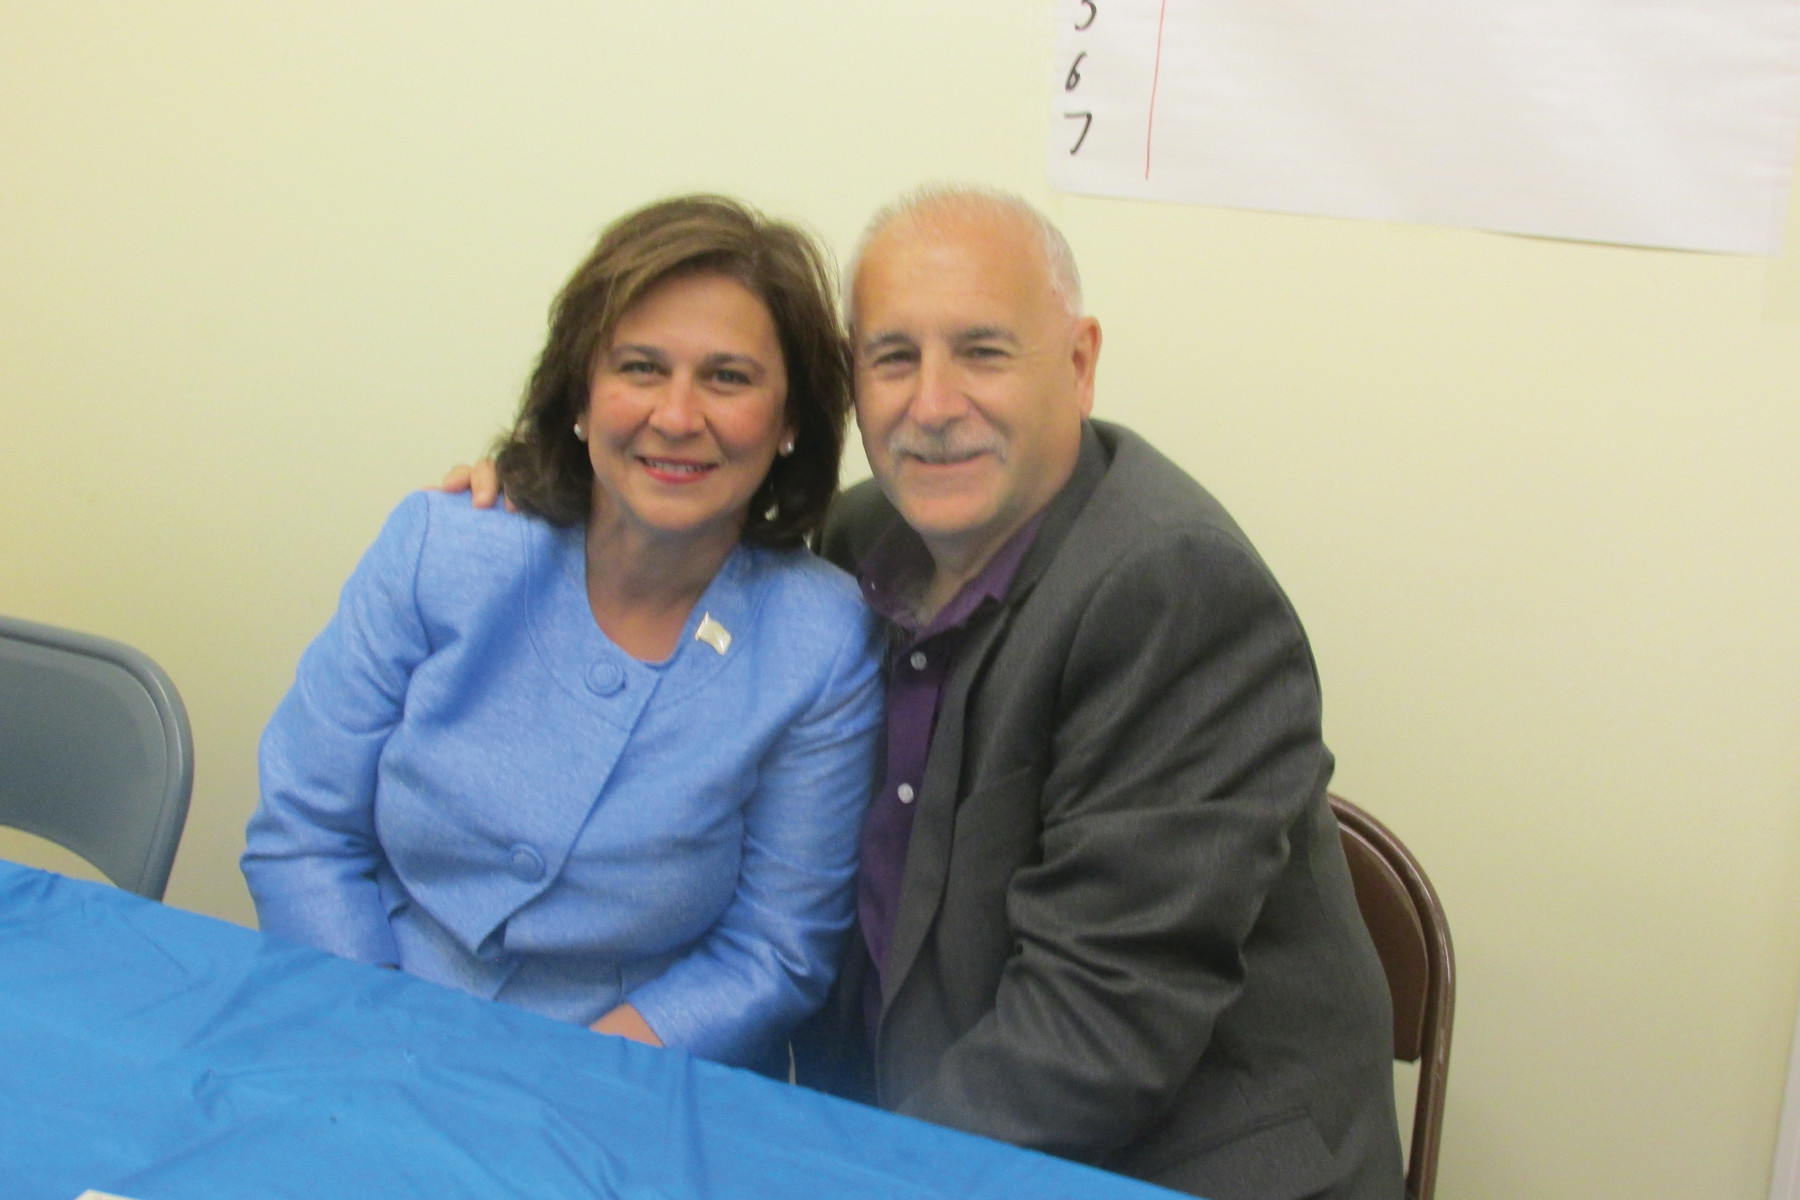 LINKED LEADERS: Secretary of State Nellie Gorbea was among the many top-ranking Democrats who took part in Mayor Joseph Polisena's special luncheon last Thursday in Johnston.